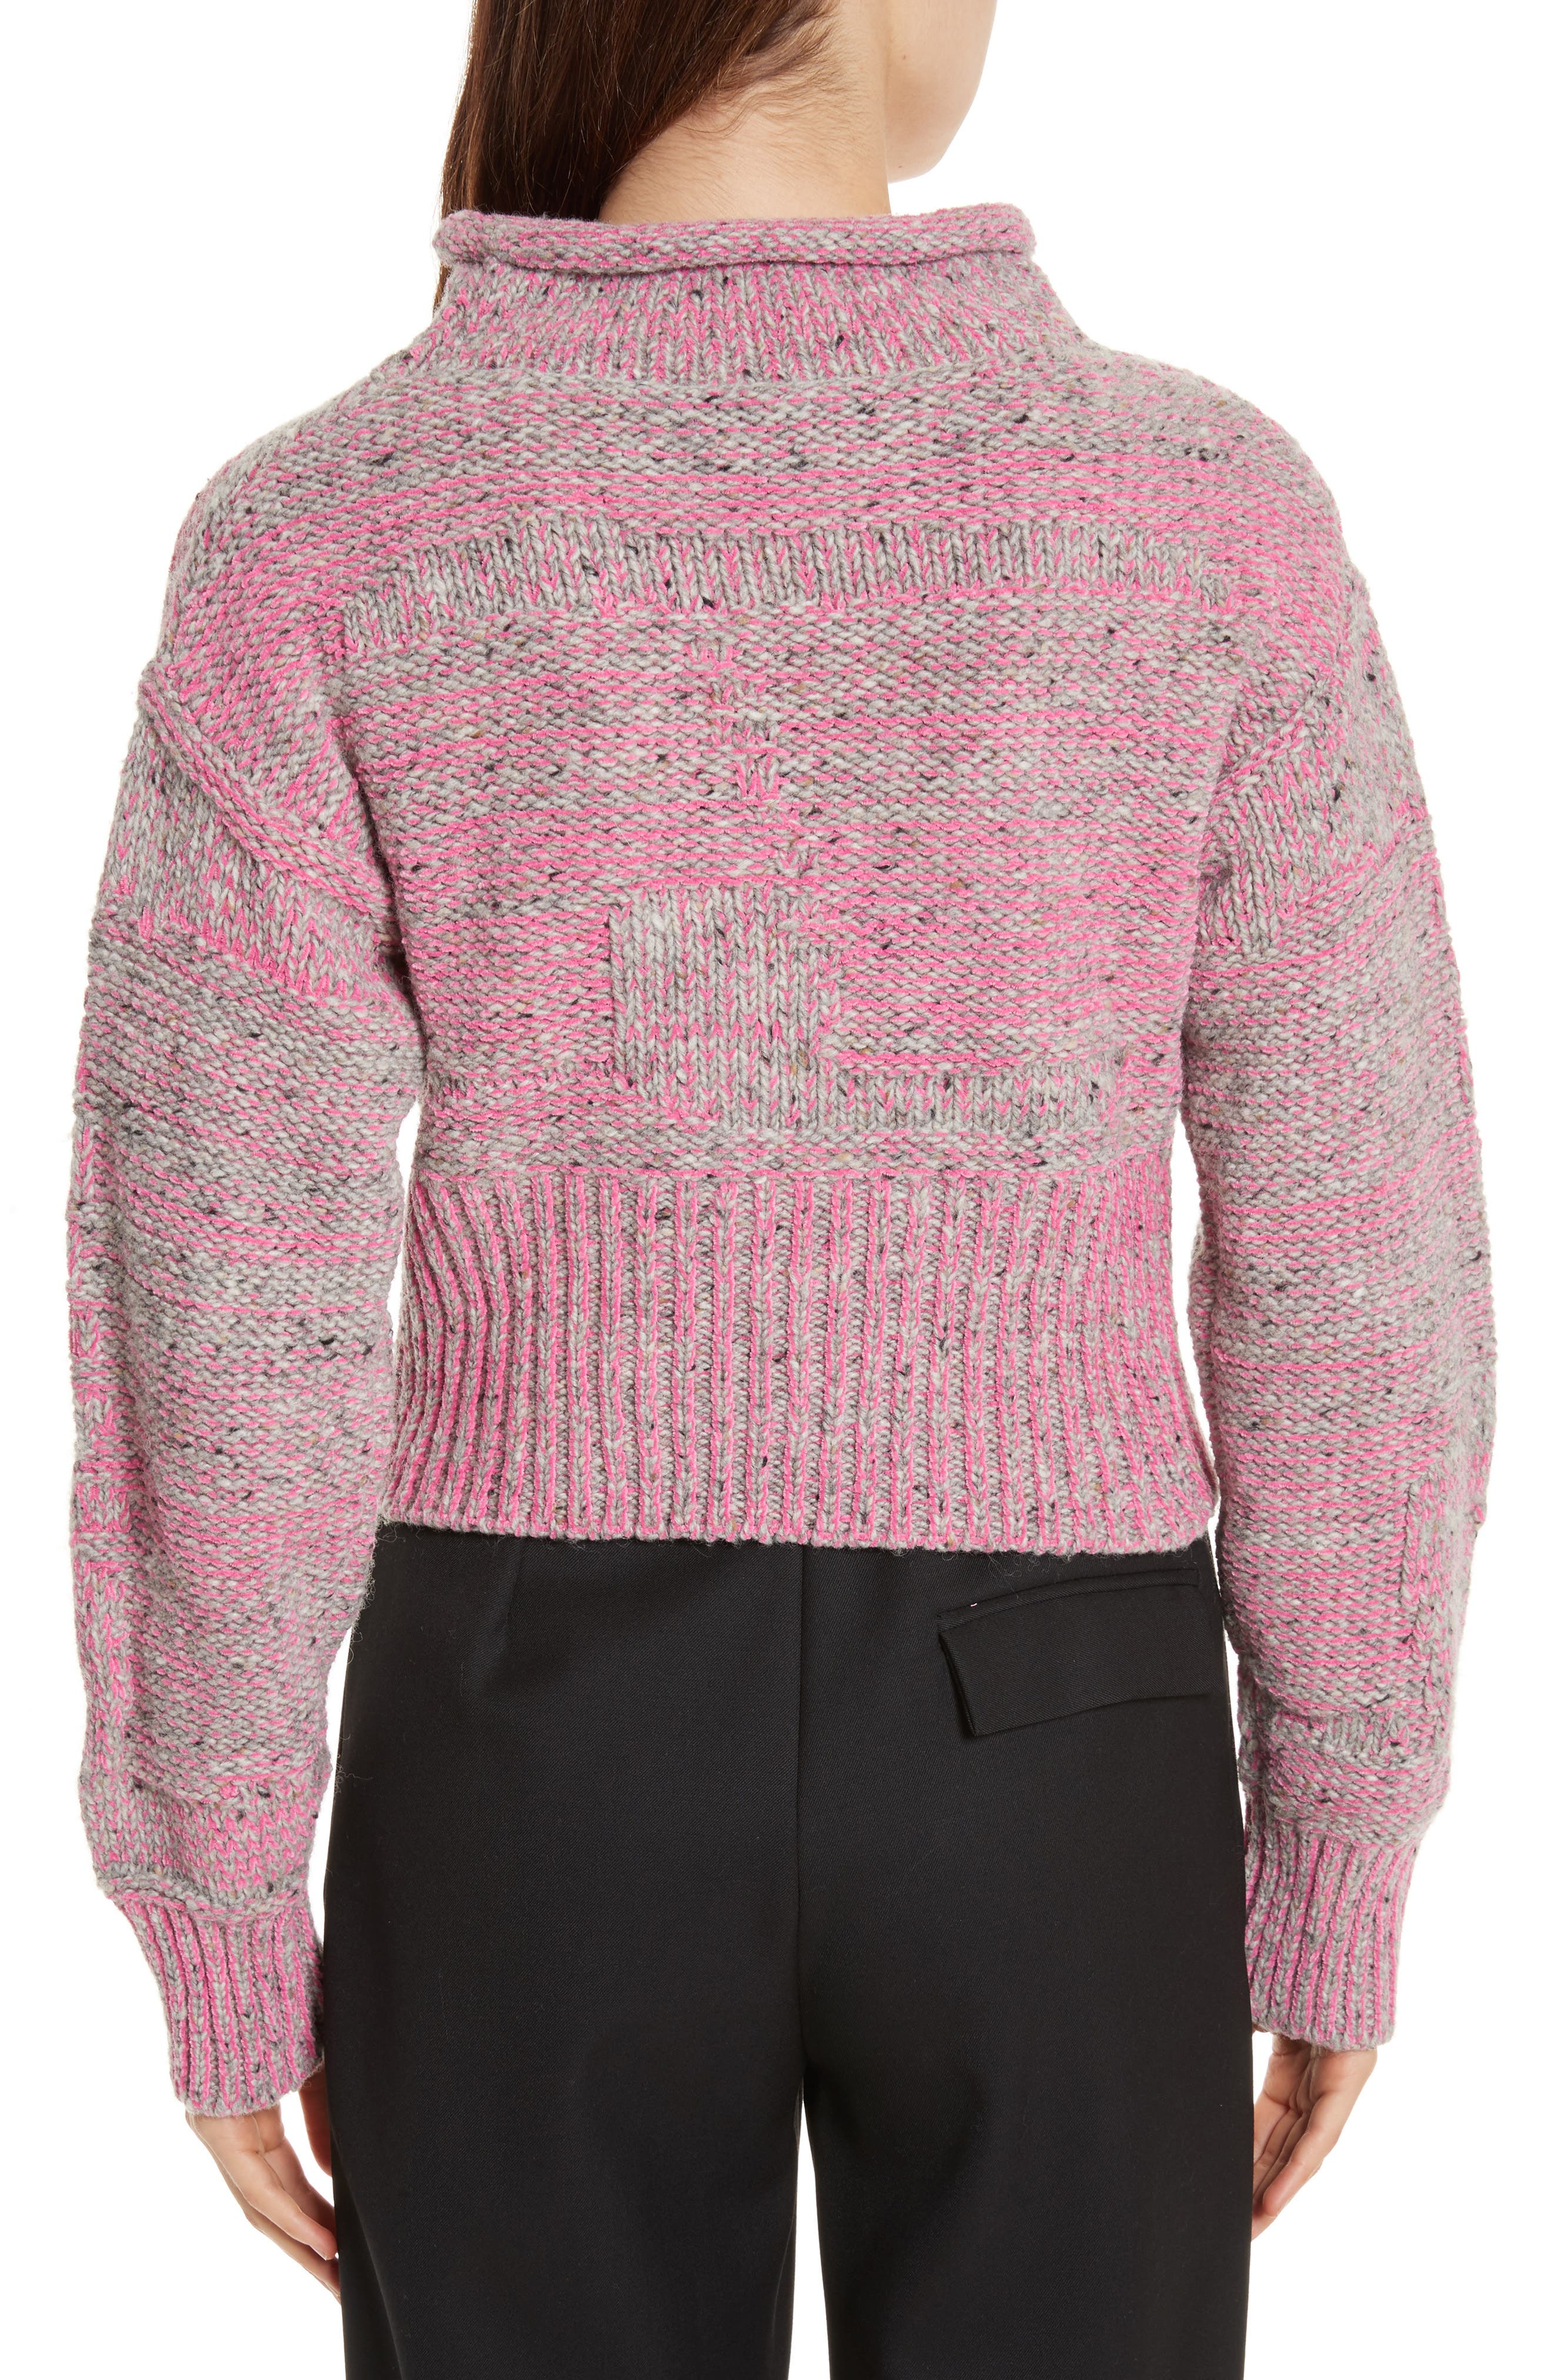 Wool Blend Funnel Neck Sweater,                             Alternate thumbnail 2, color,                             680